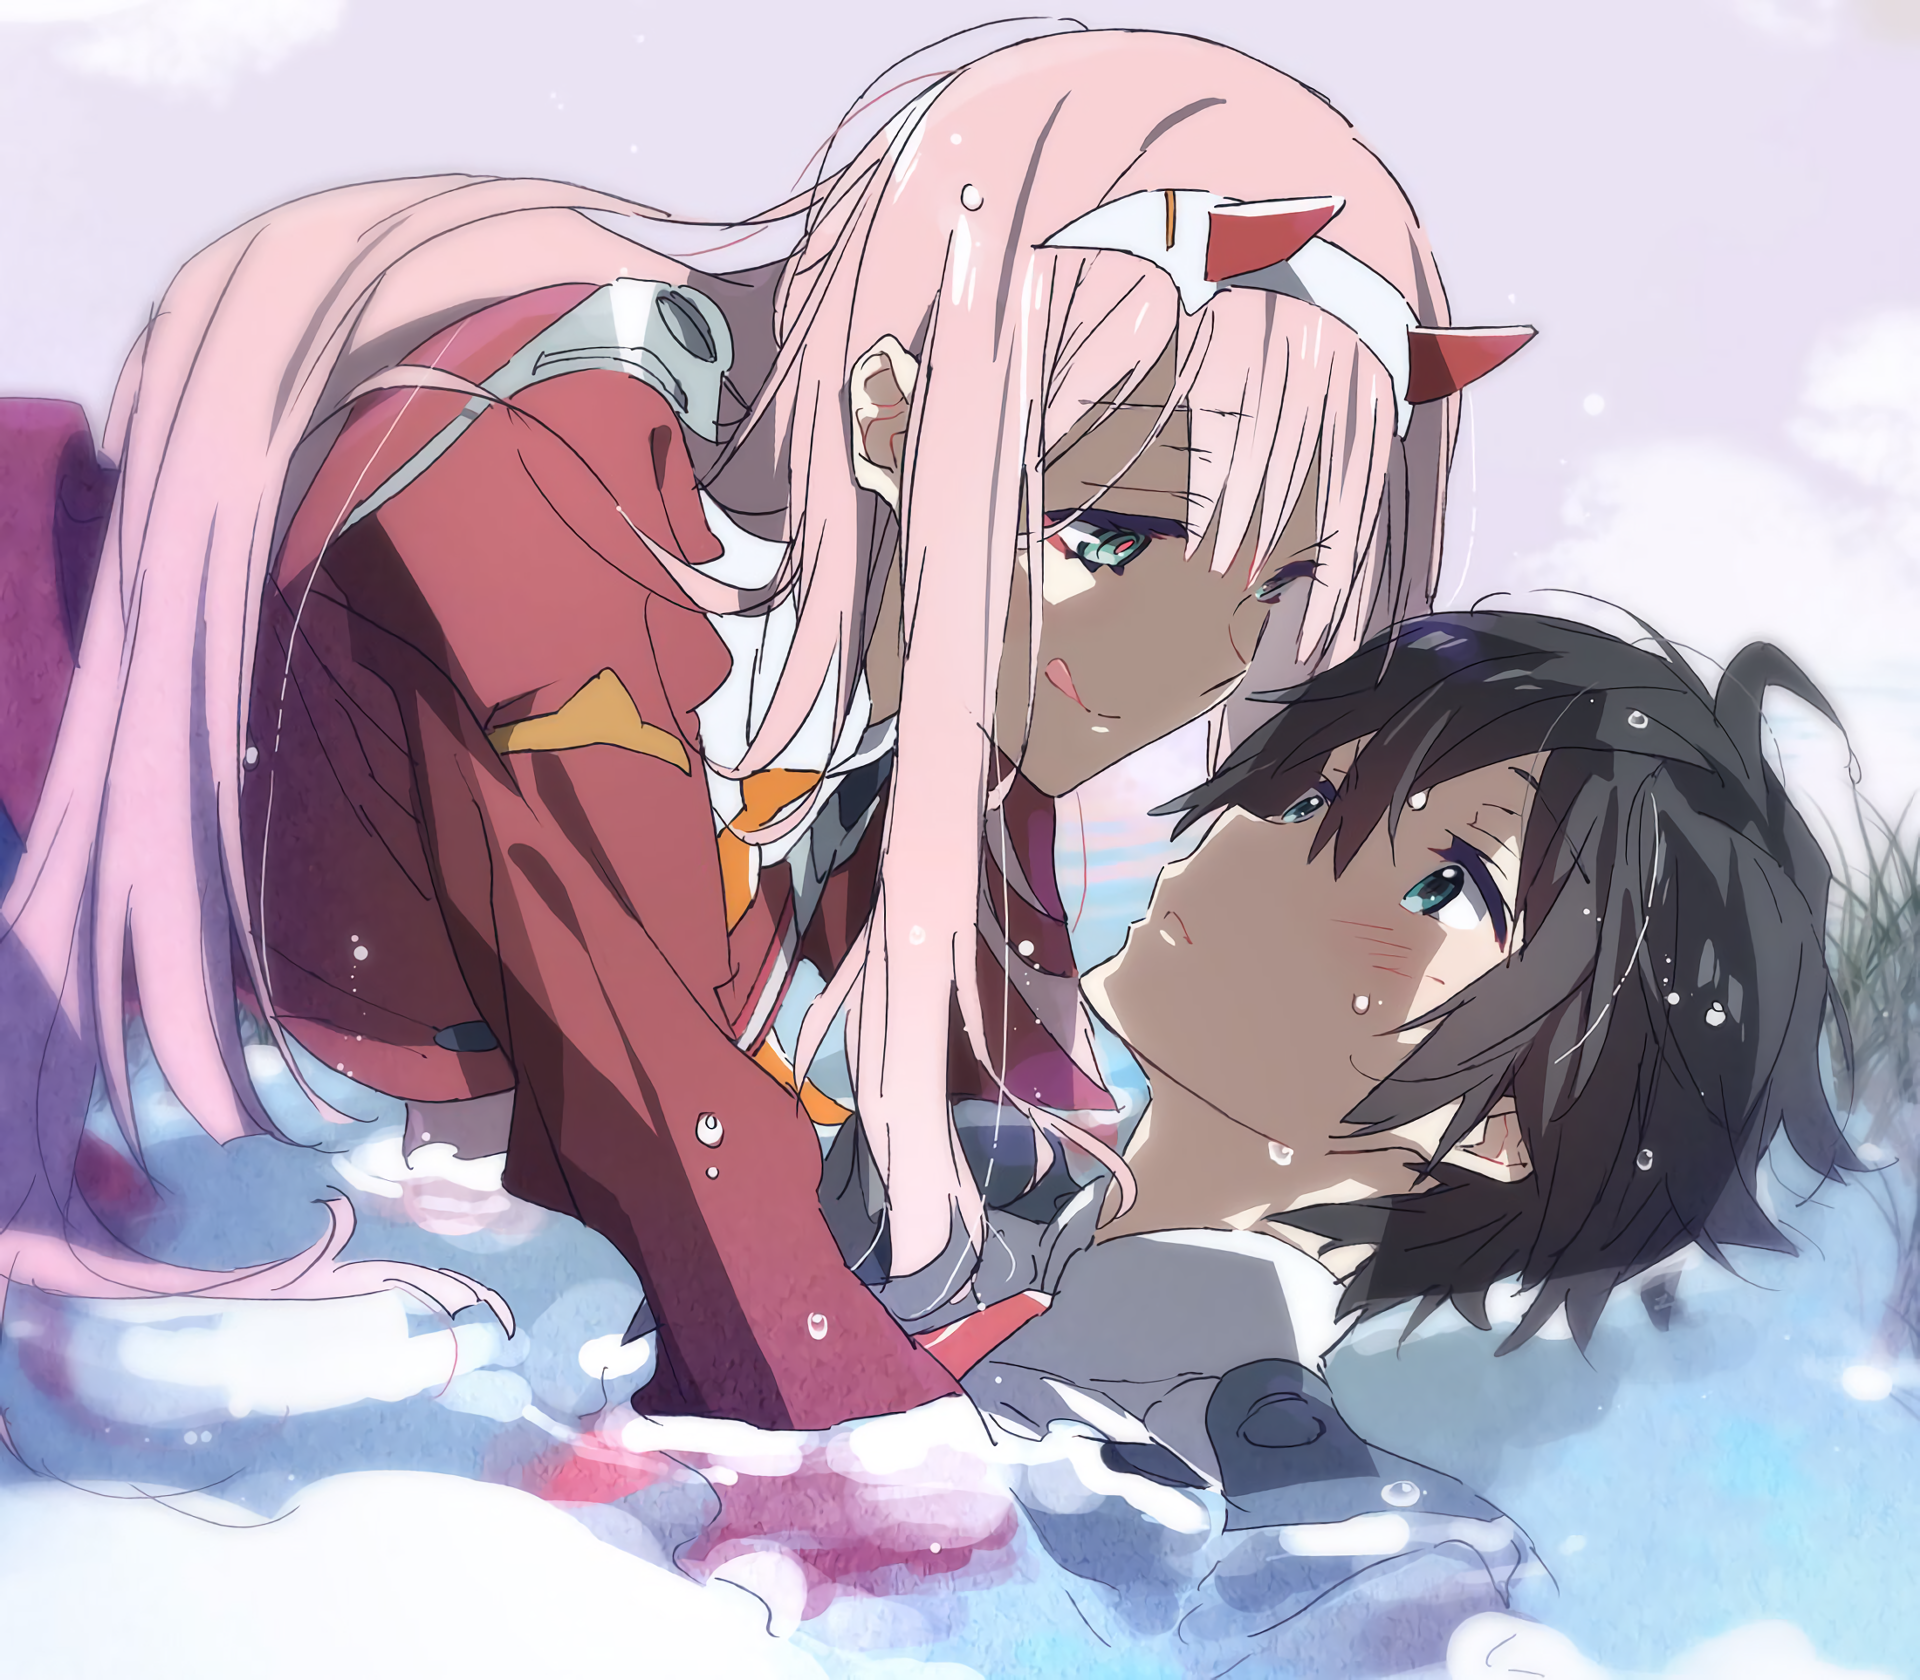 Anime - Darling in the FranXX  Zero Two (Darling in the FranXX) Hiro (Darling in the FranXX) Wallpaper